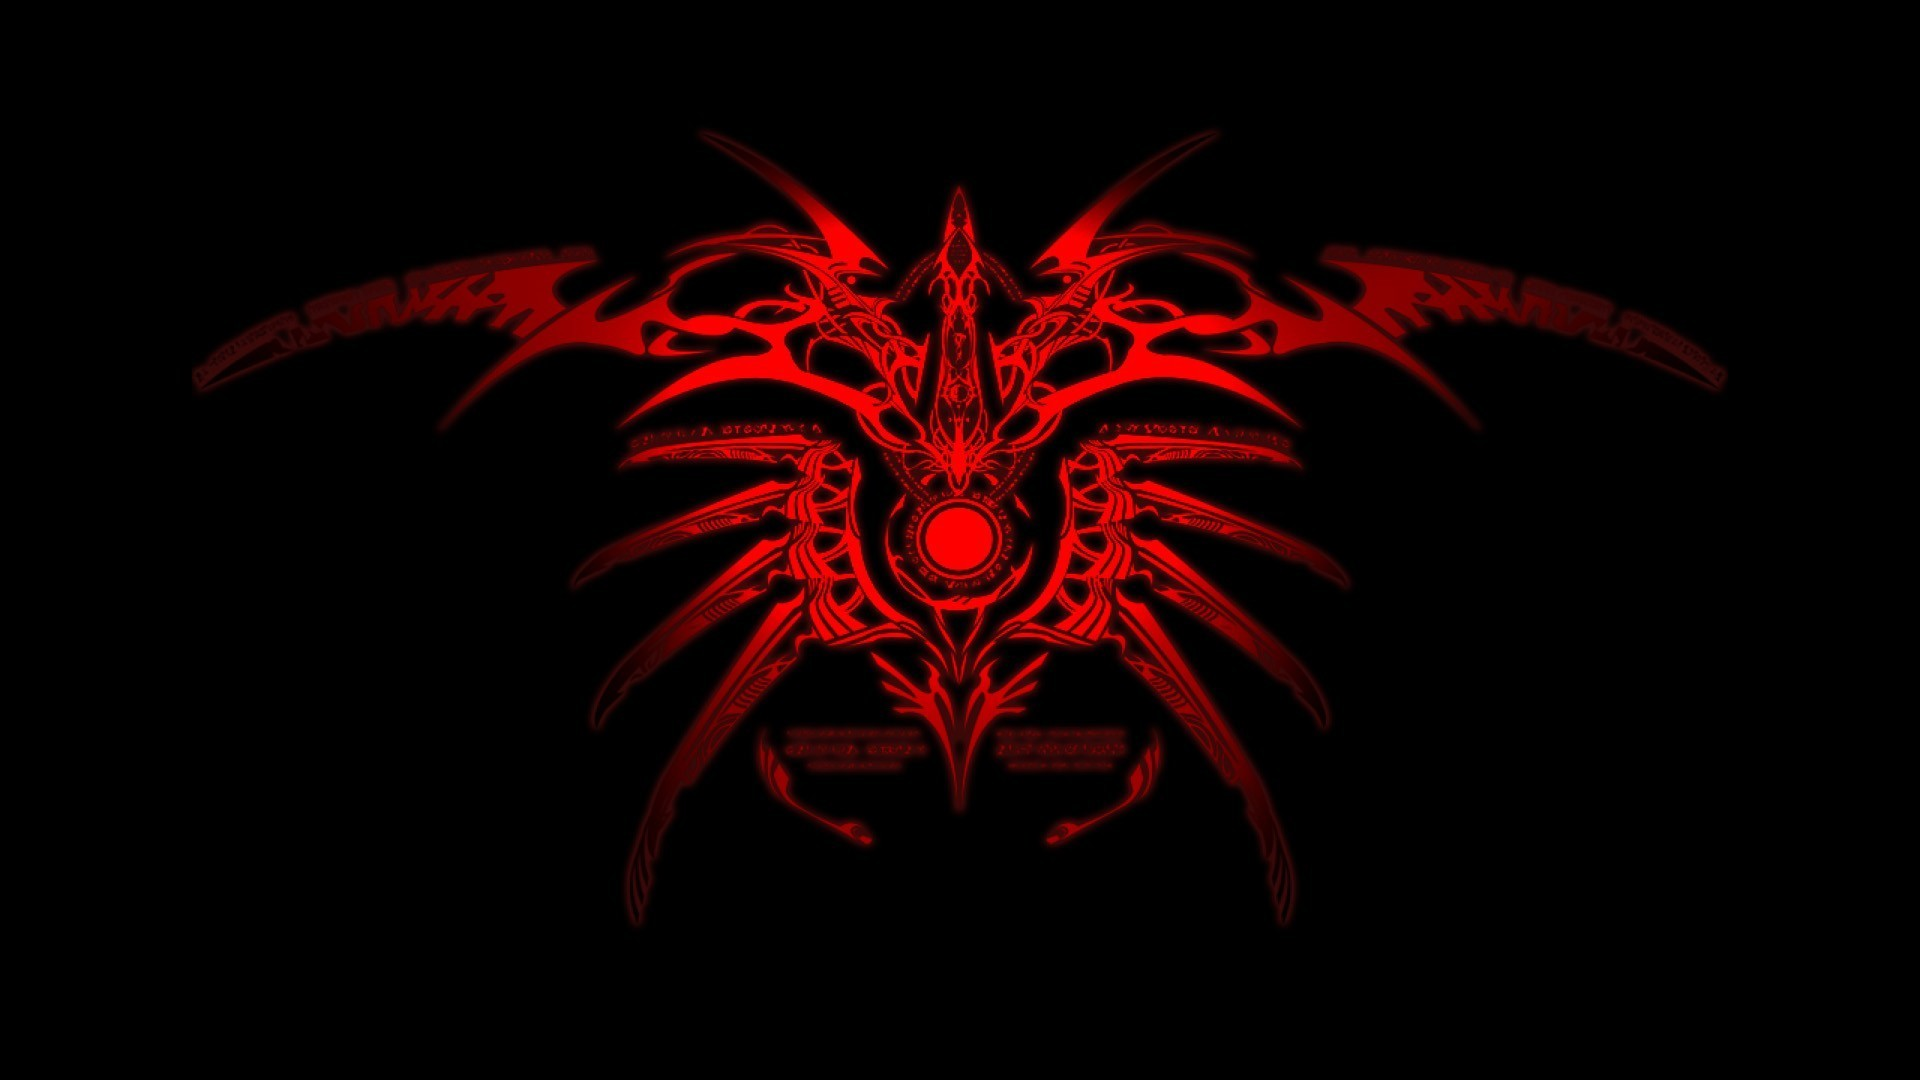 884875 cool black and red wallpapers 1920x1080 1080p